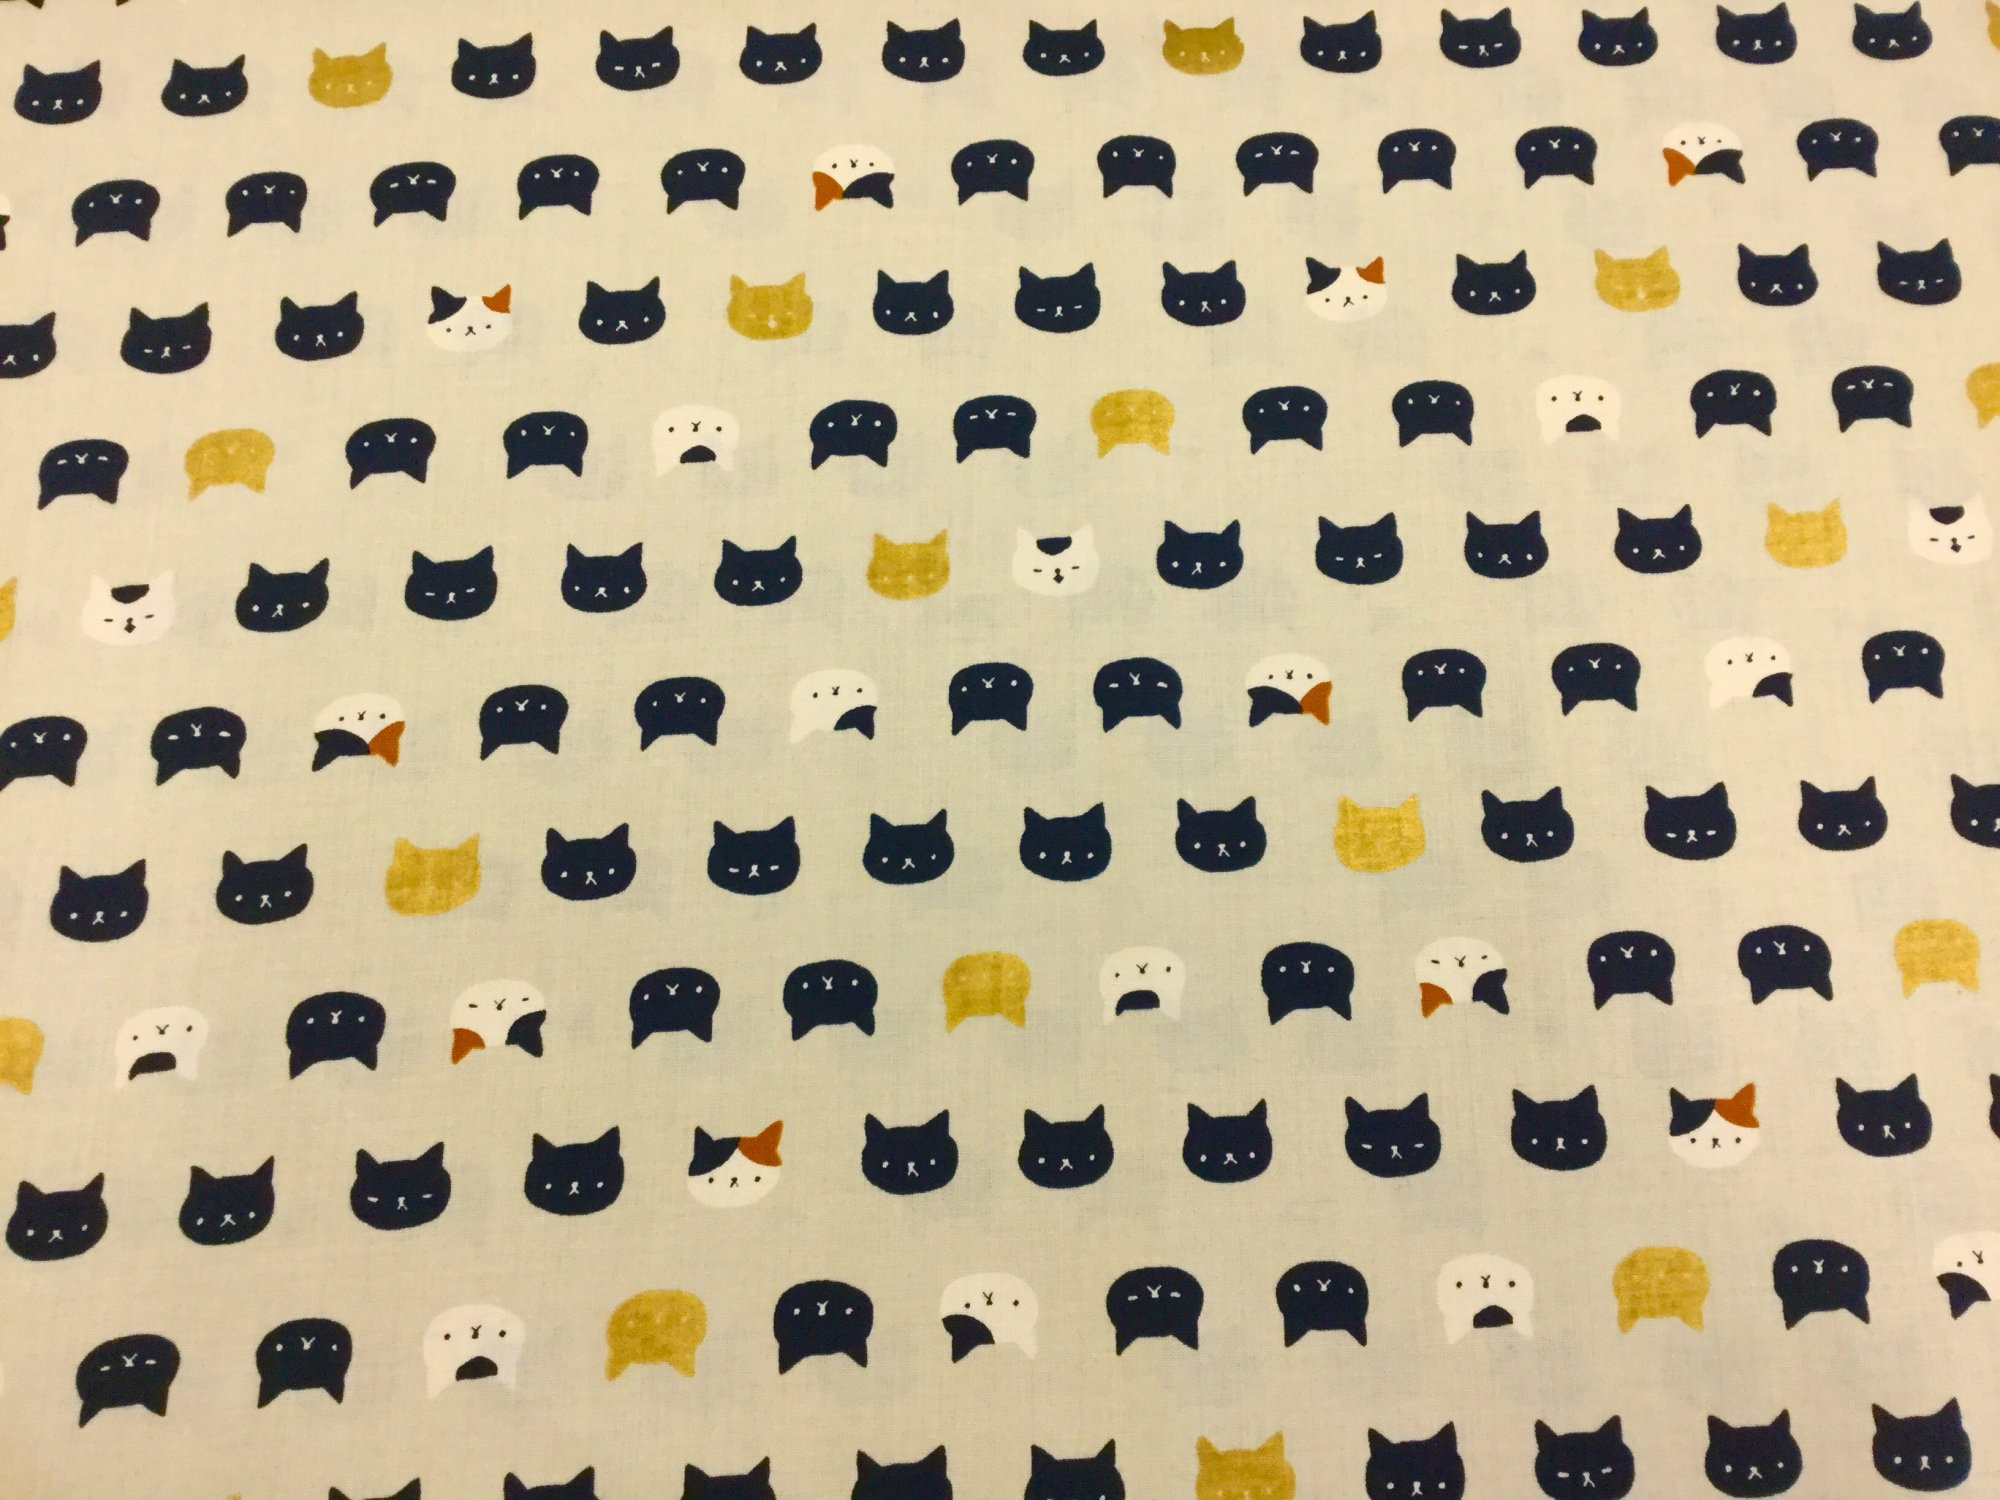 Kitty Cat Kitten Neko Japanese Asian Retro Cotton Quilt Fabric NT35